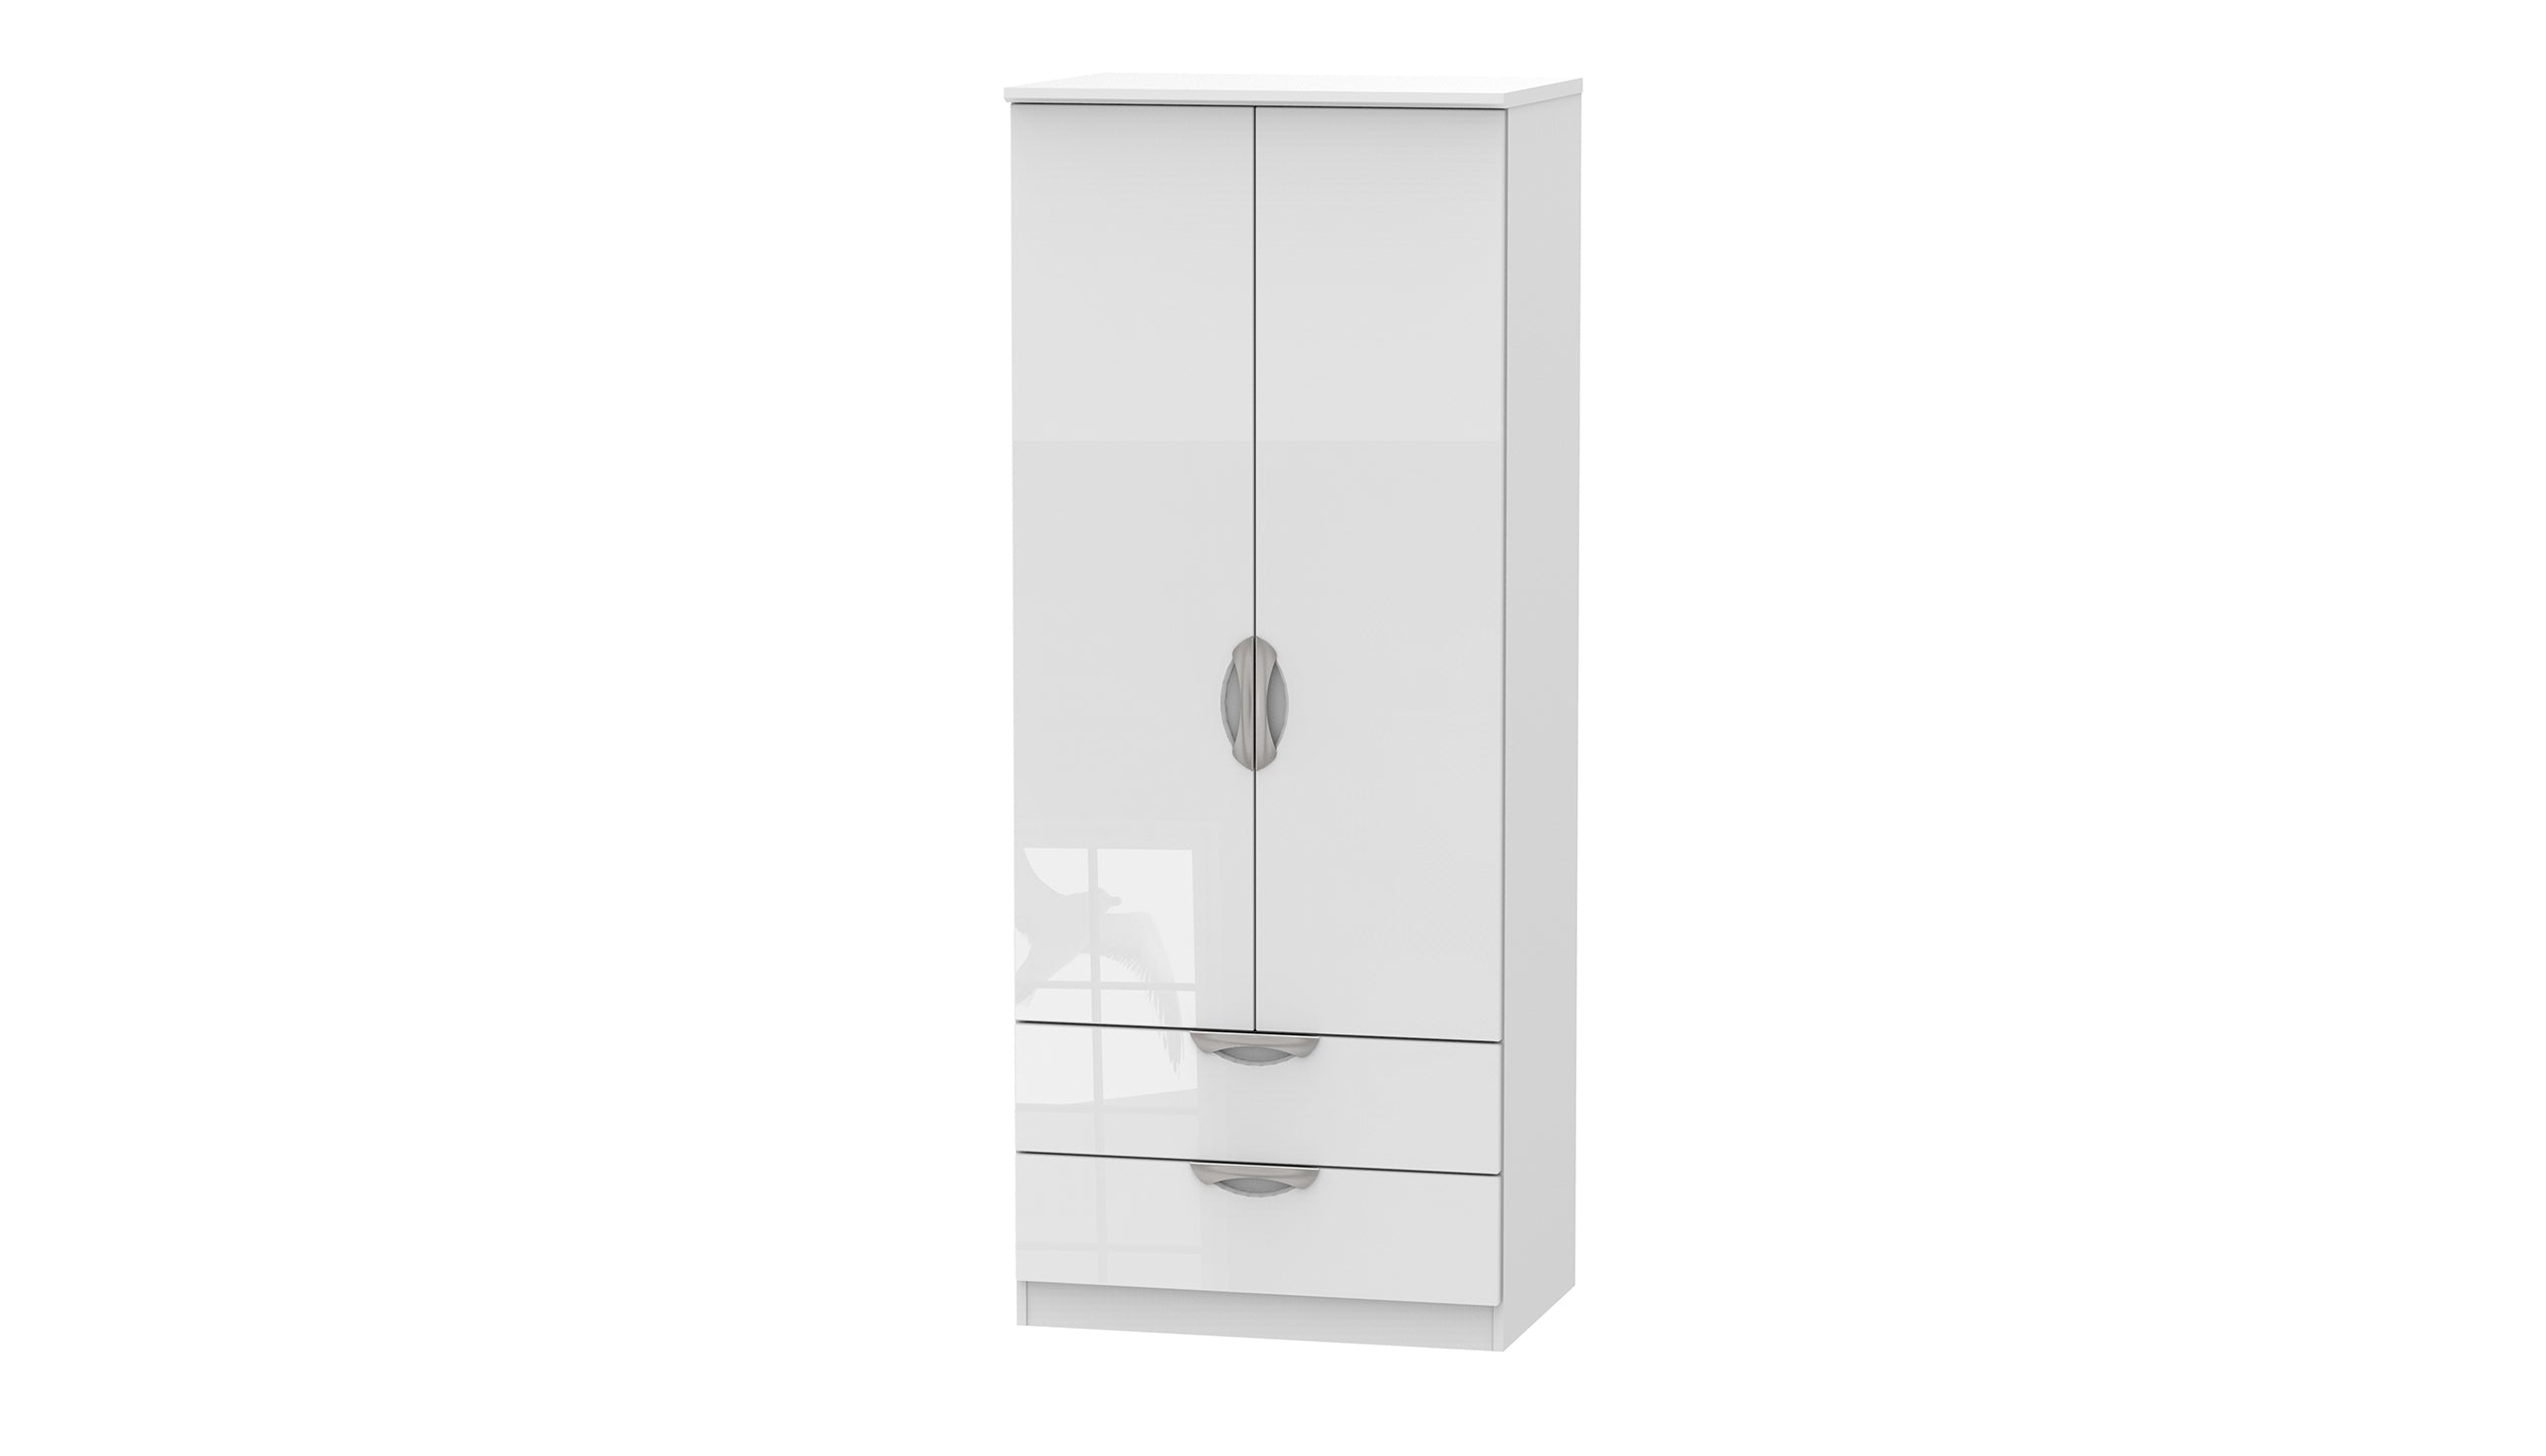 Moda Double 2 Drawer Wardrobe - AHF Furniture & Carpets